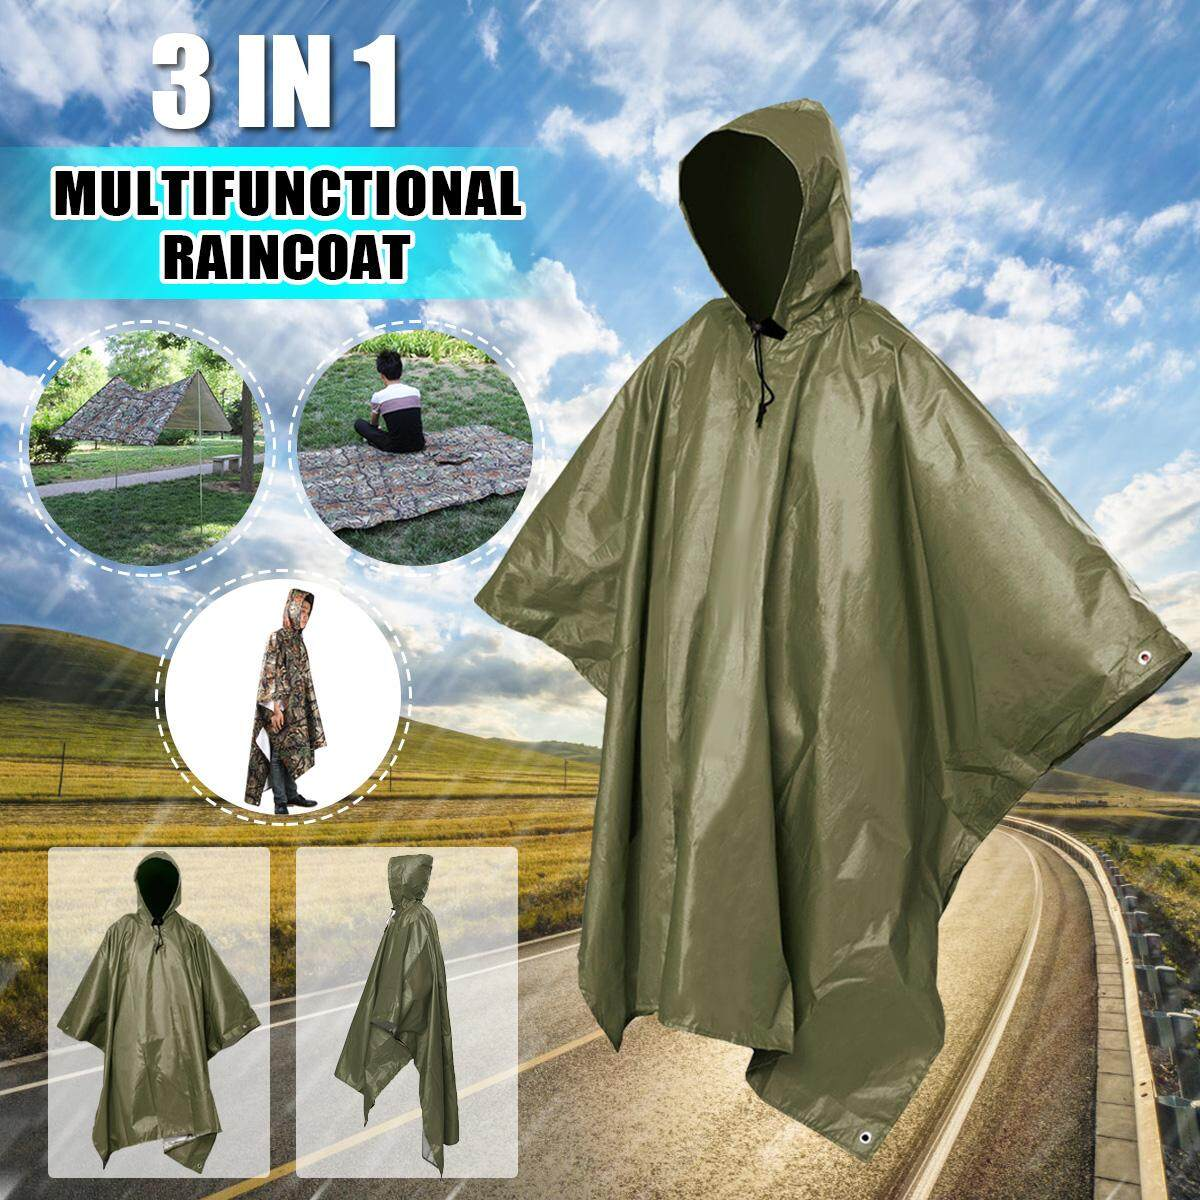 Energetic 3 In 1 Multifunctional Raincoat Outdoor Travel Rain Poncho Rain Cover Waterproof Tent Awning Camping Hiking Sleeping Bag Matching In Colour Camping & Hiking Camp Sleeping Gear